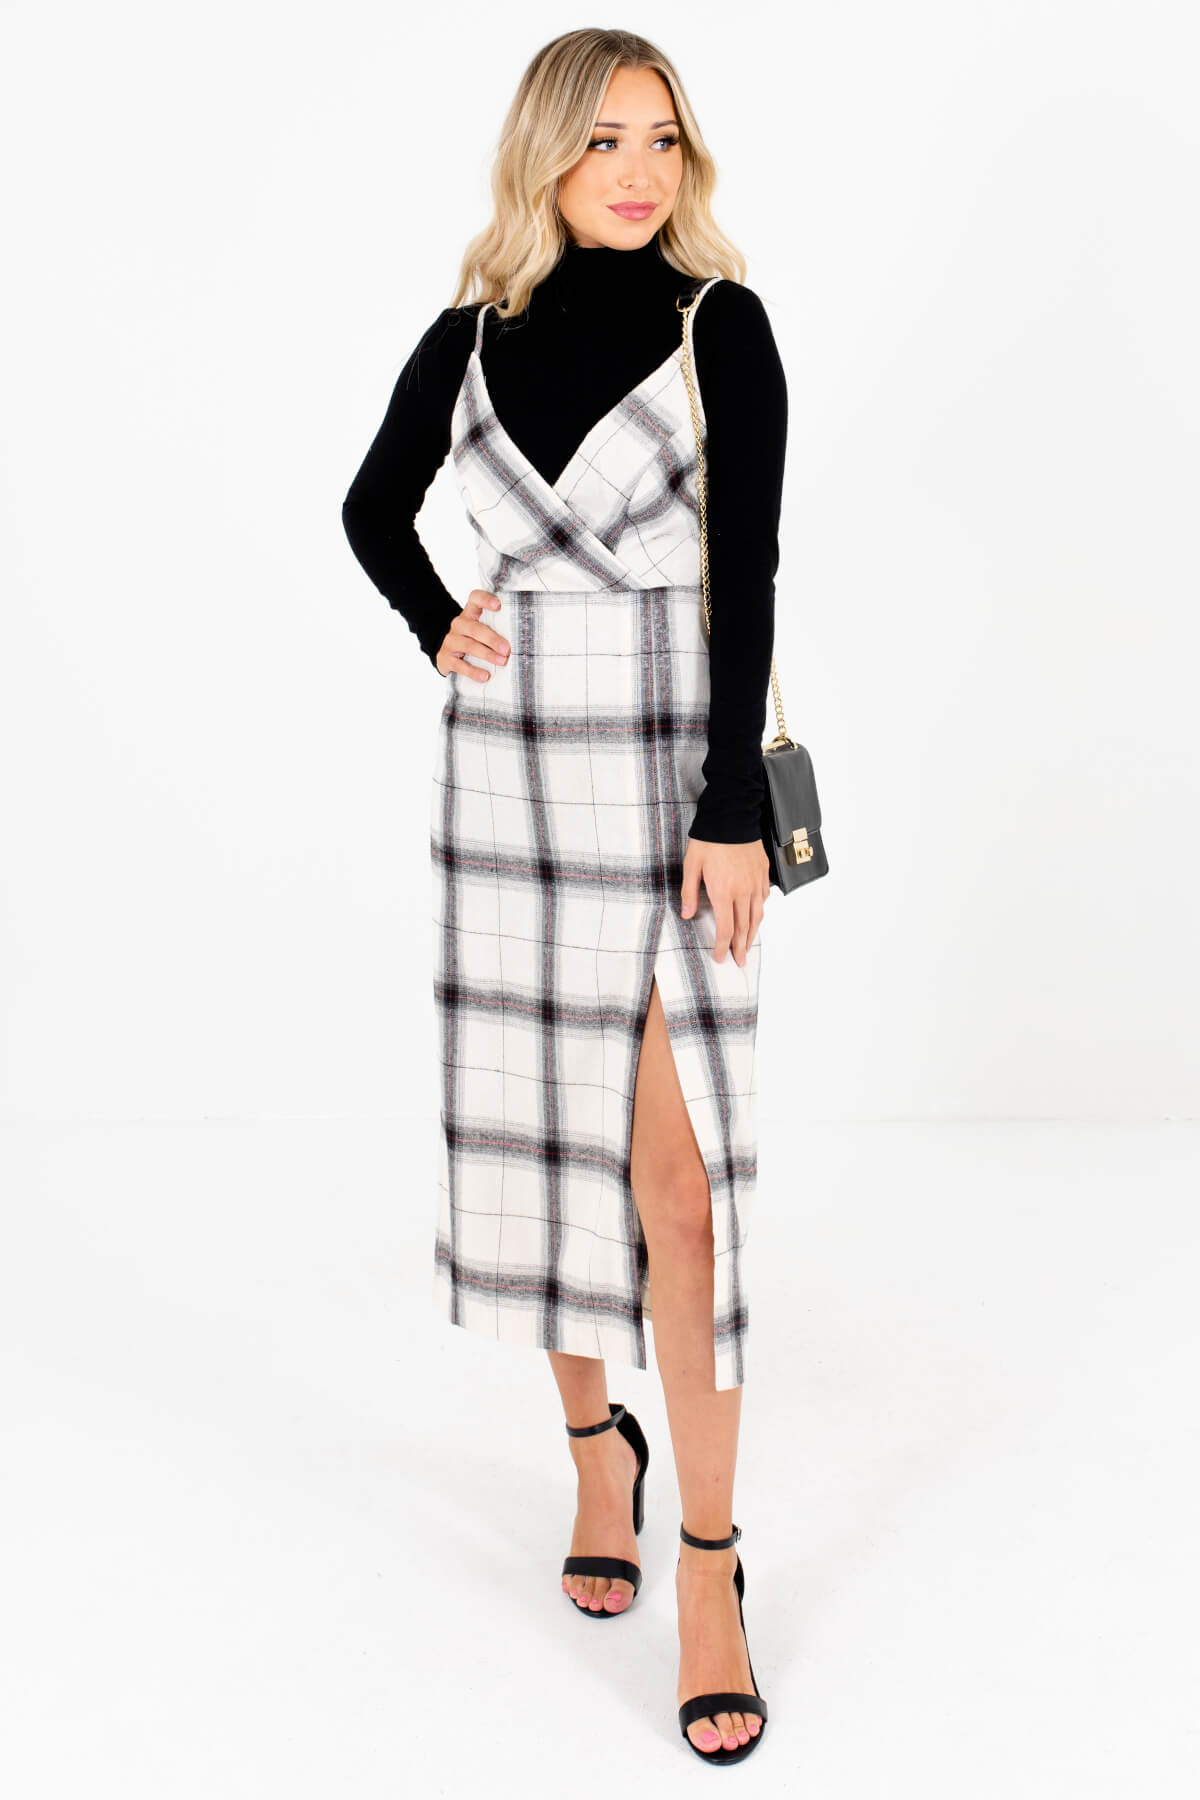 Cream Multicolored Plaid Patterned Boutique Midi Dresses for Women